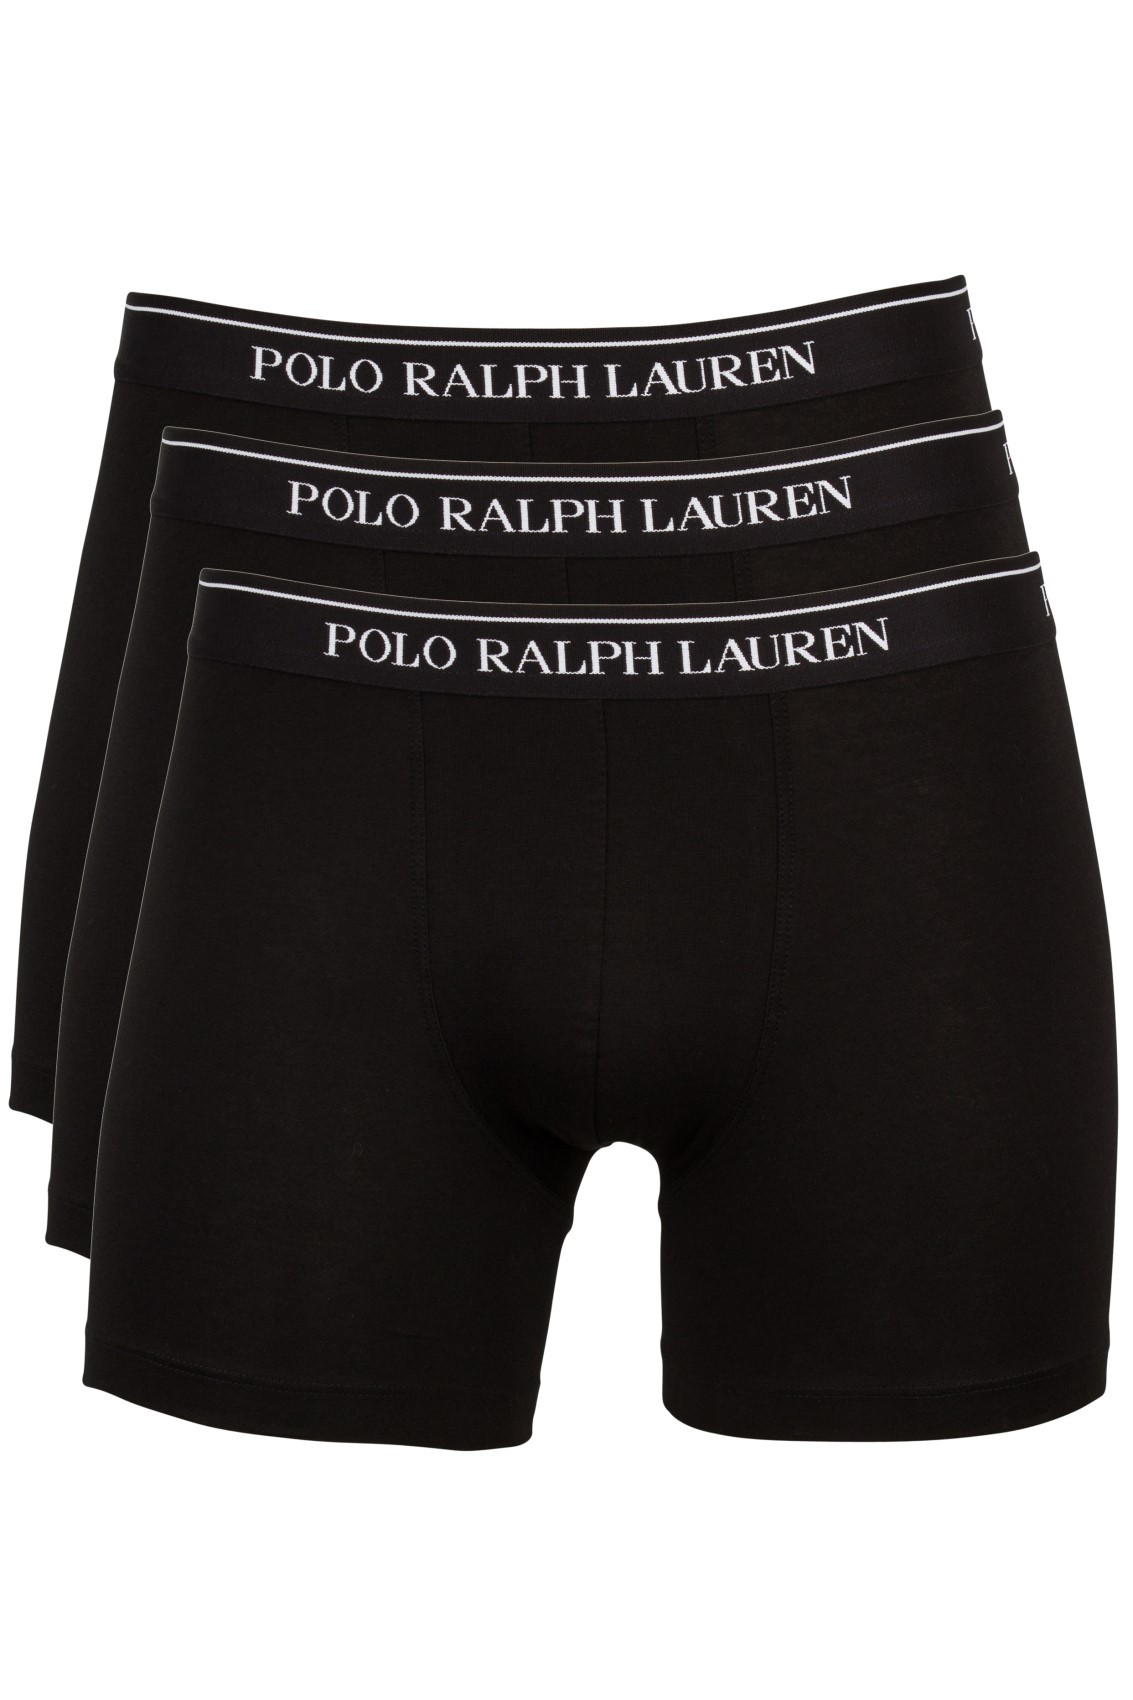 ralph lauren boxer brief zwart 3 pack. Black Bedroom Furniture Sets. Home Design Ideas